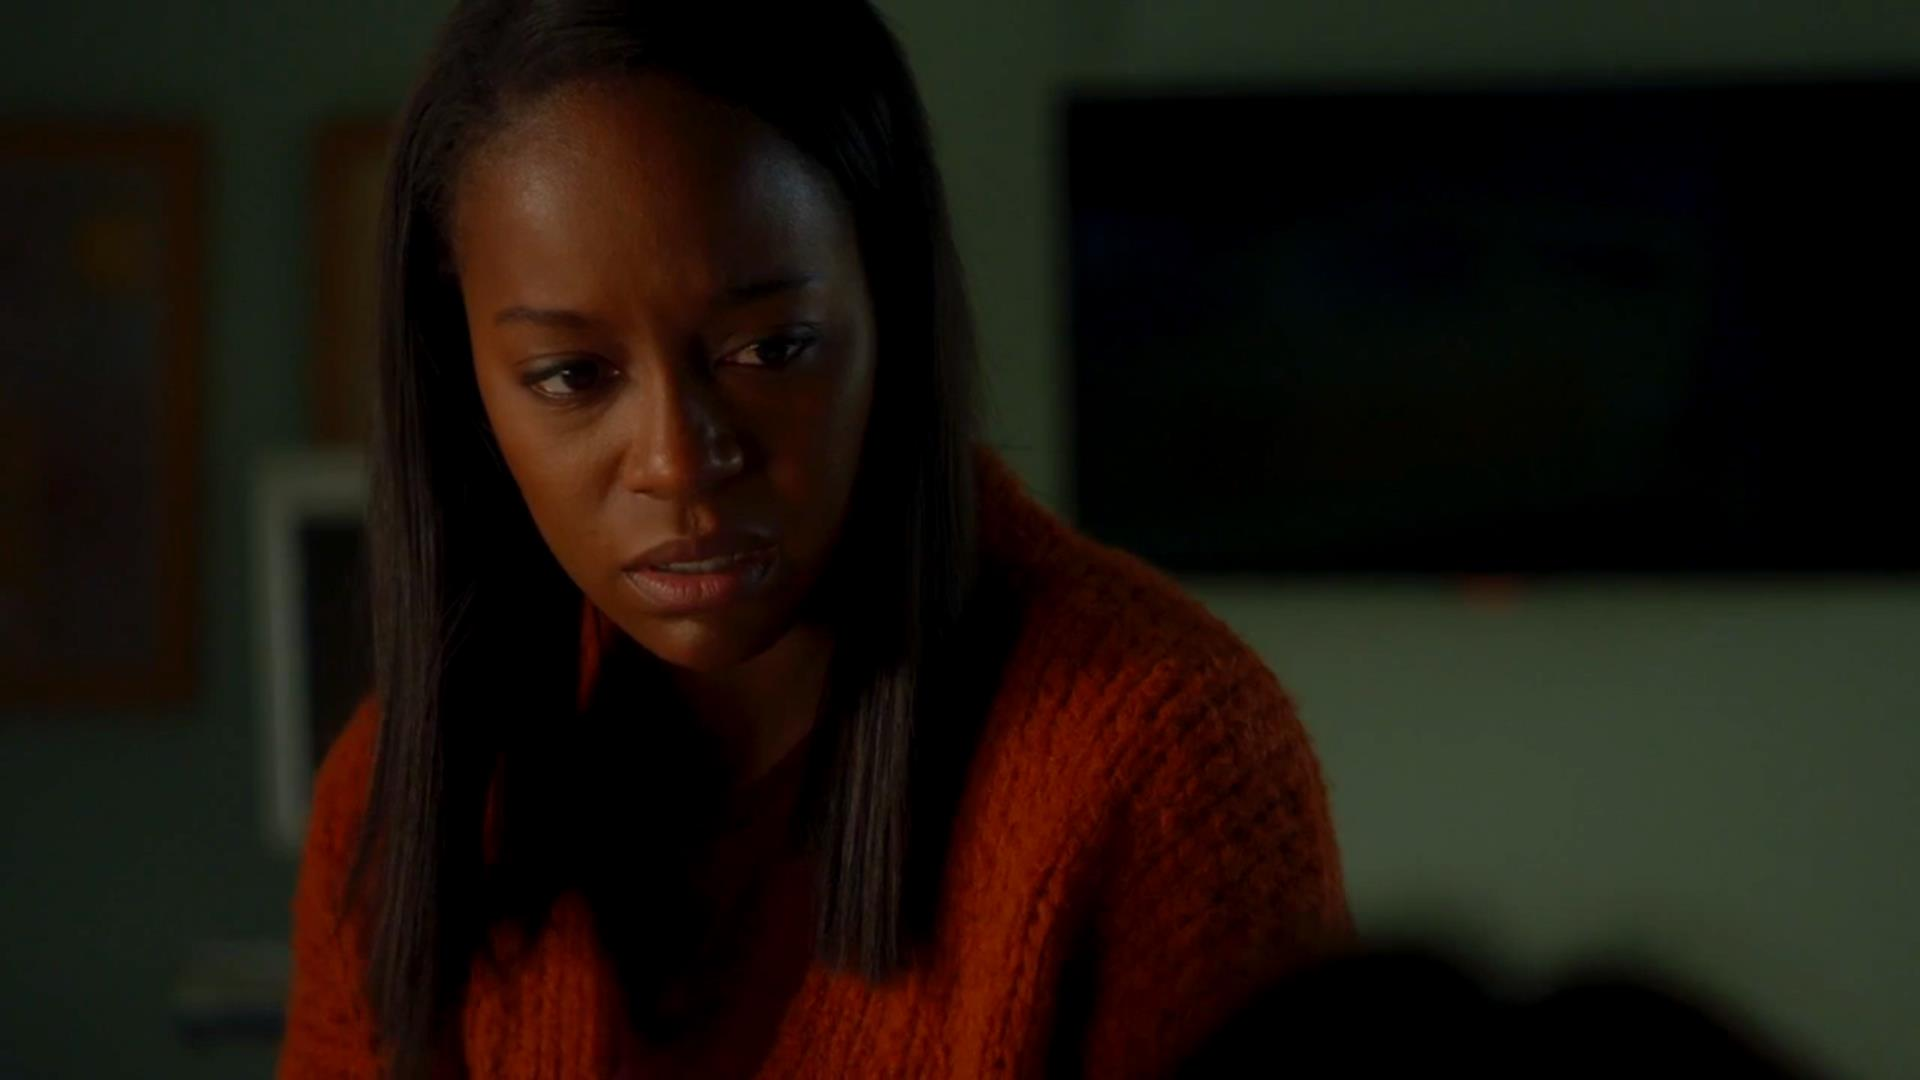 'How To Get Away With Murder' 3×10 'We're Bad People' Captures